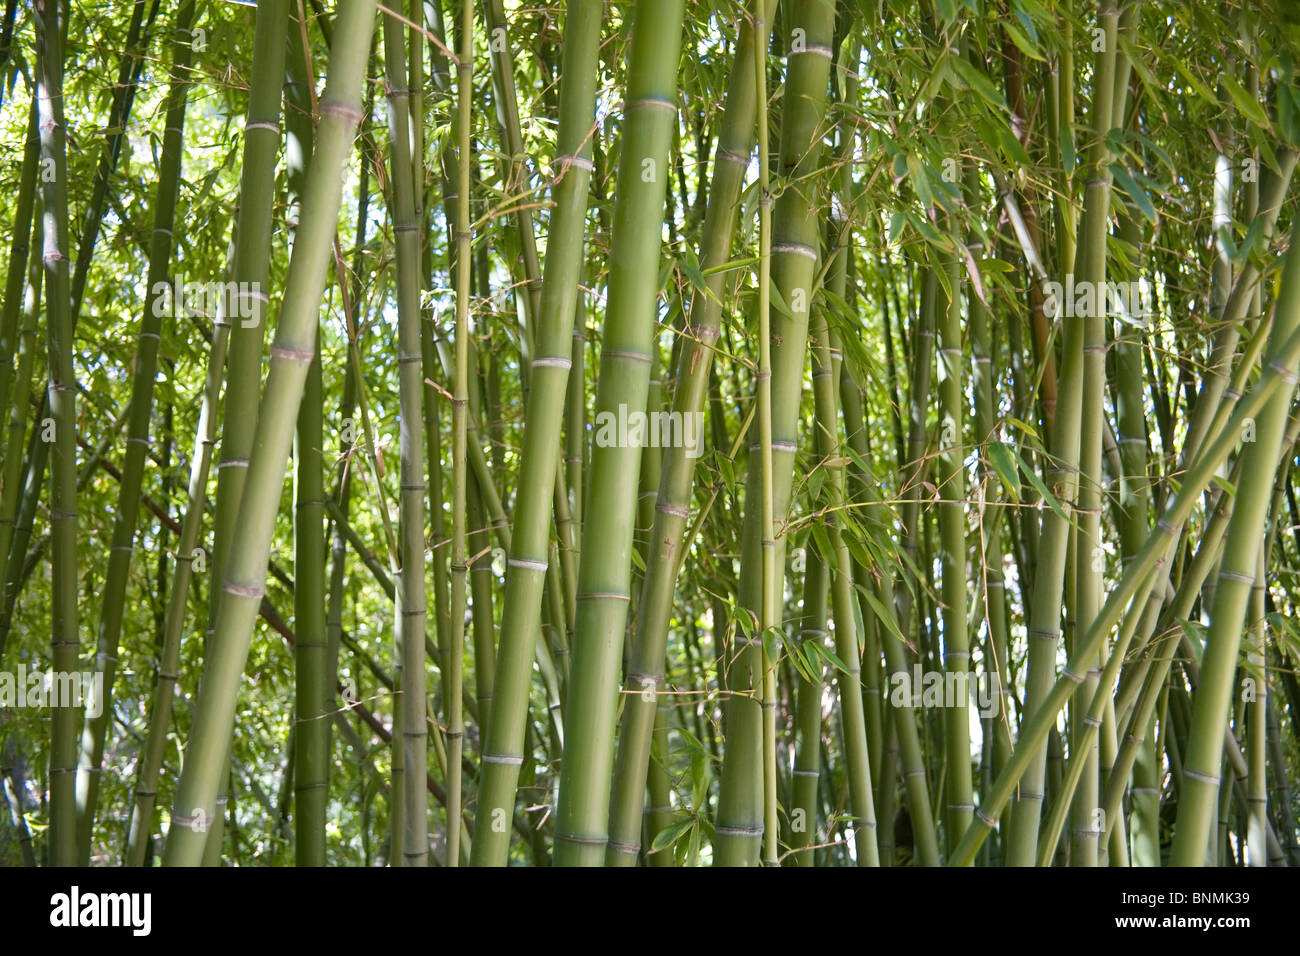 Image source plantsam com - A Forest Of Geen Bamboo Plants This Plant Is Used In Gardens As A Building Material And As A Food Source